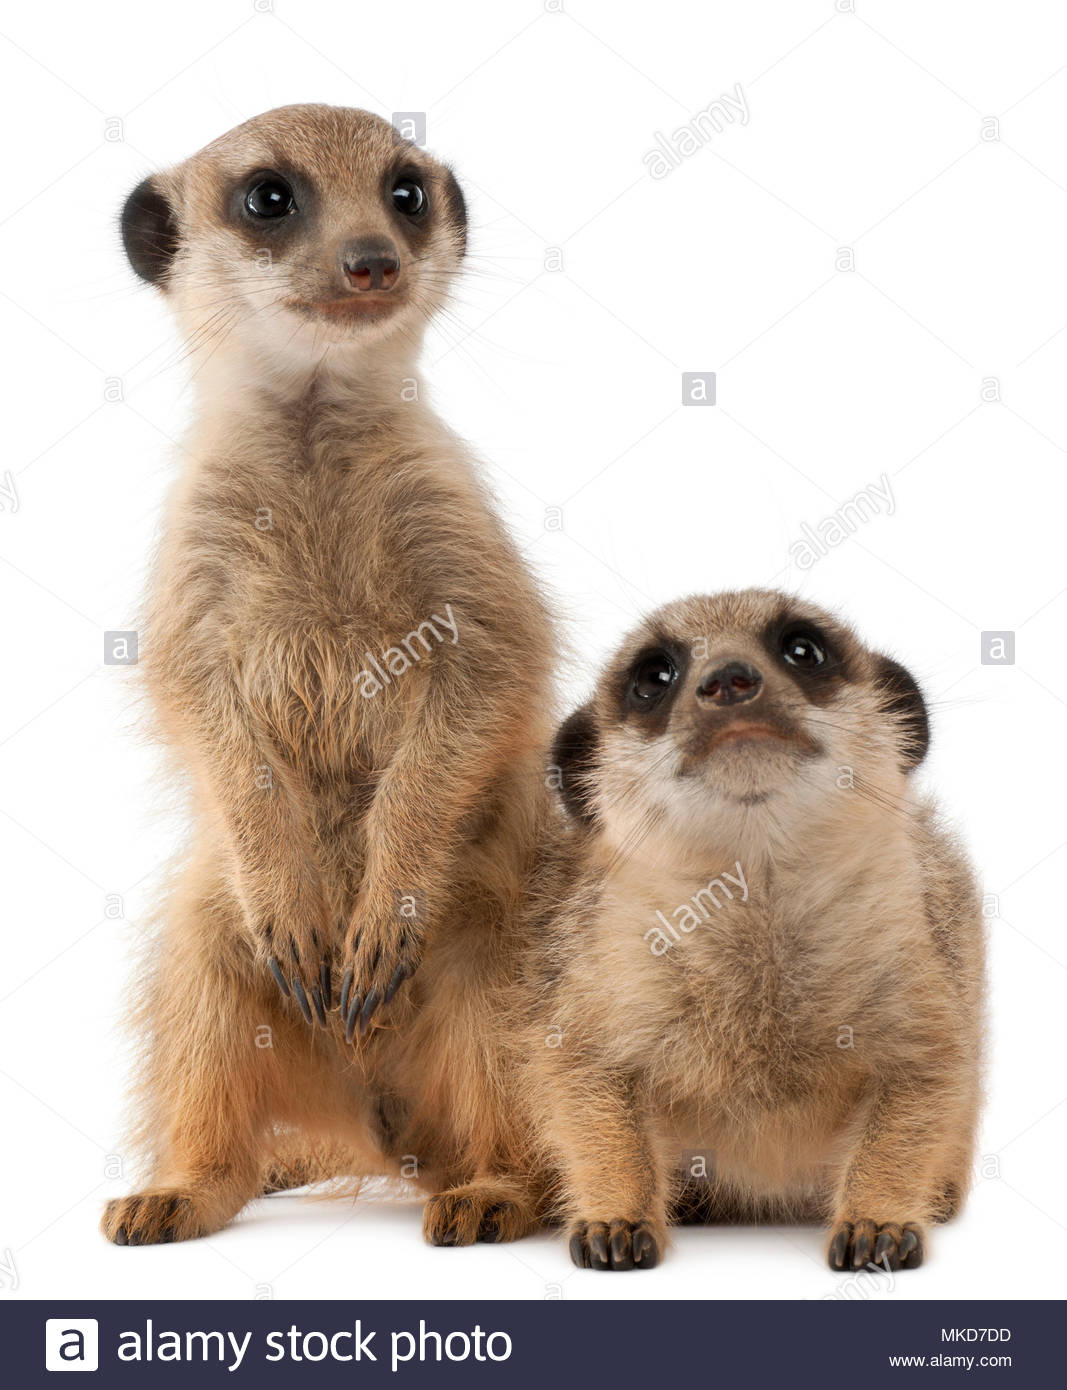 Meerkat or Suricate, (Suricata suricatta), babies, in front of white background Mulhouse Zoological and Botanical Park, France - Stock Image